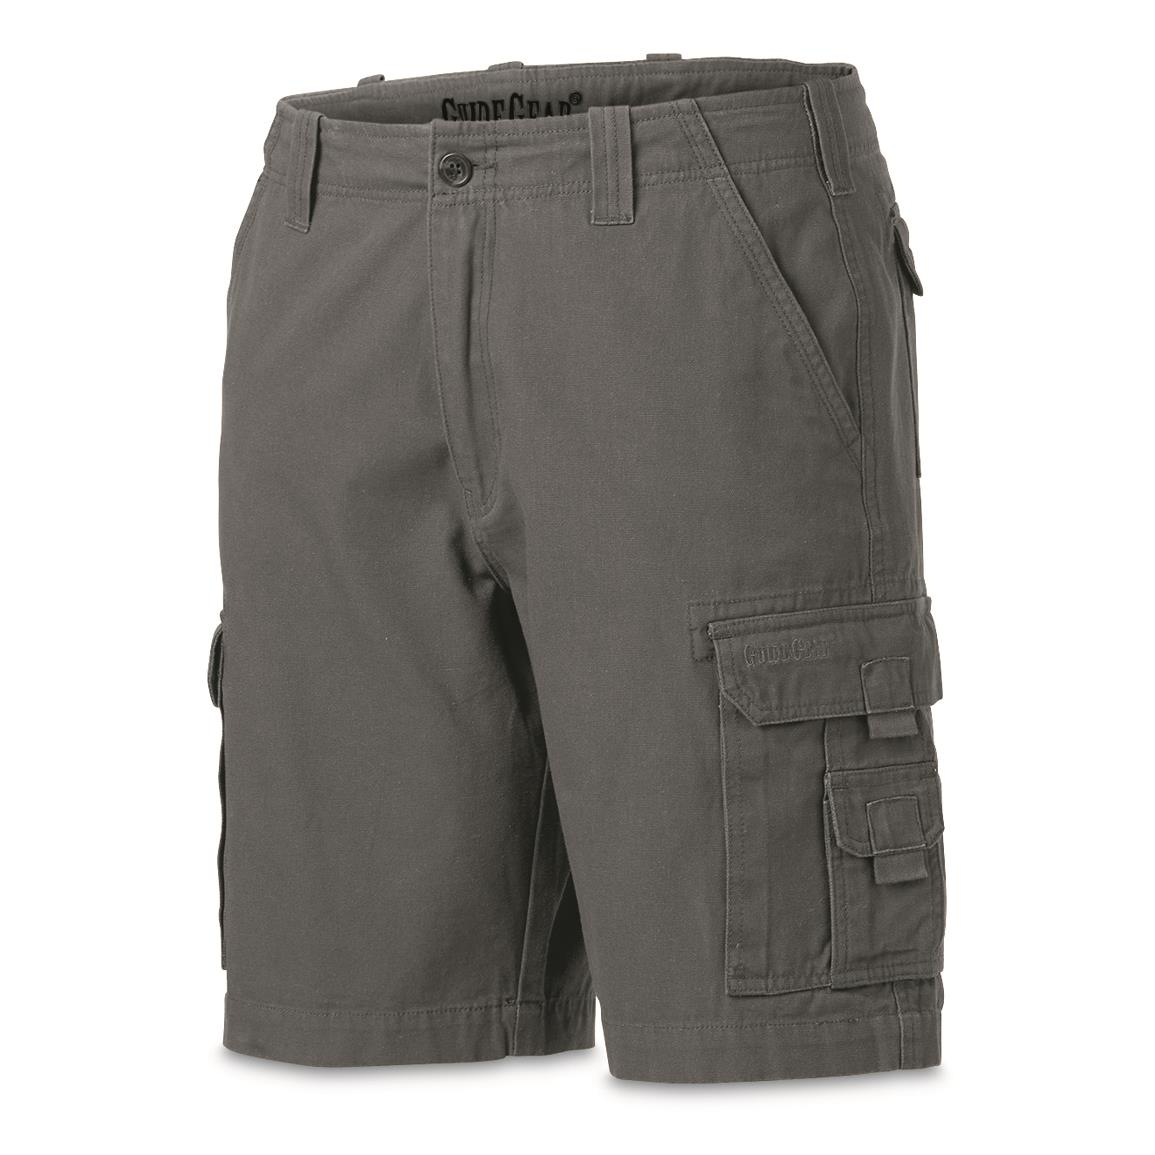 "Guide Gear Men's Outdoor Cargo Shorts, Gray, 10"" inseam"